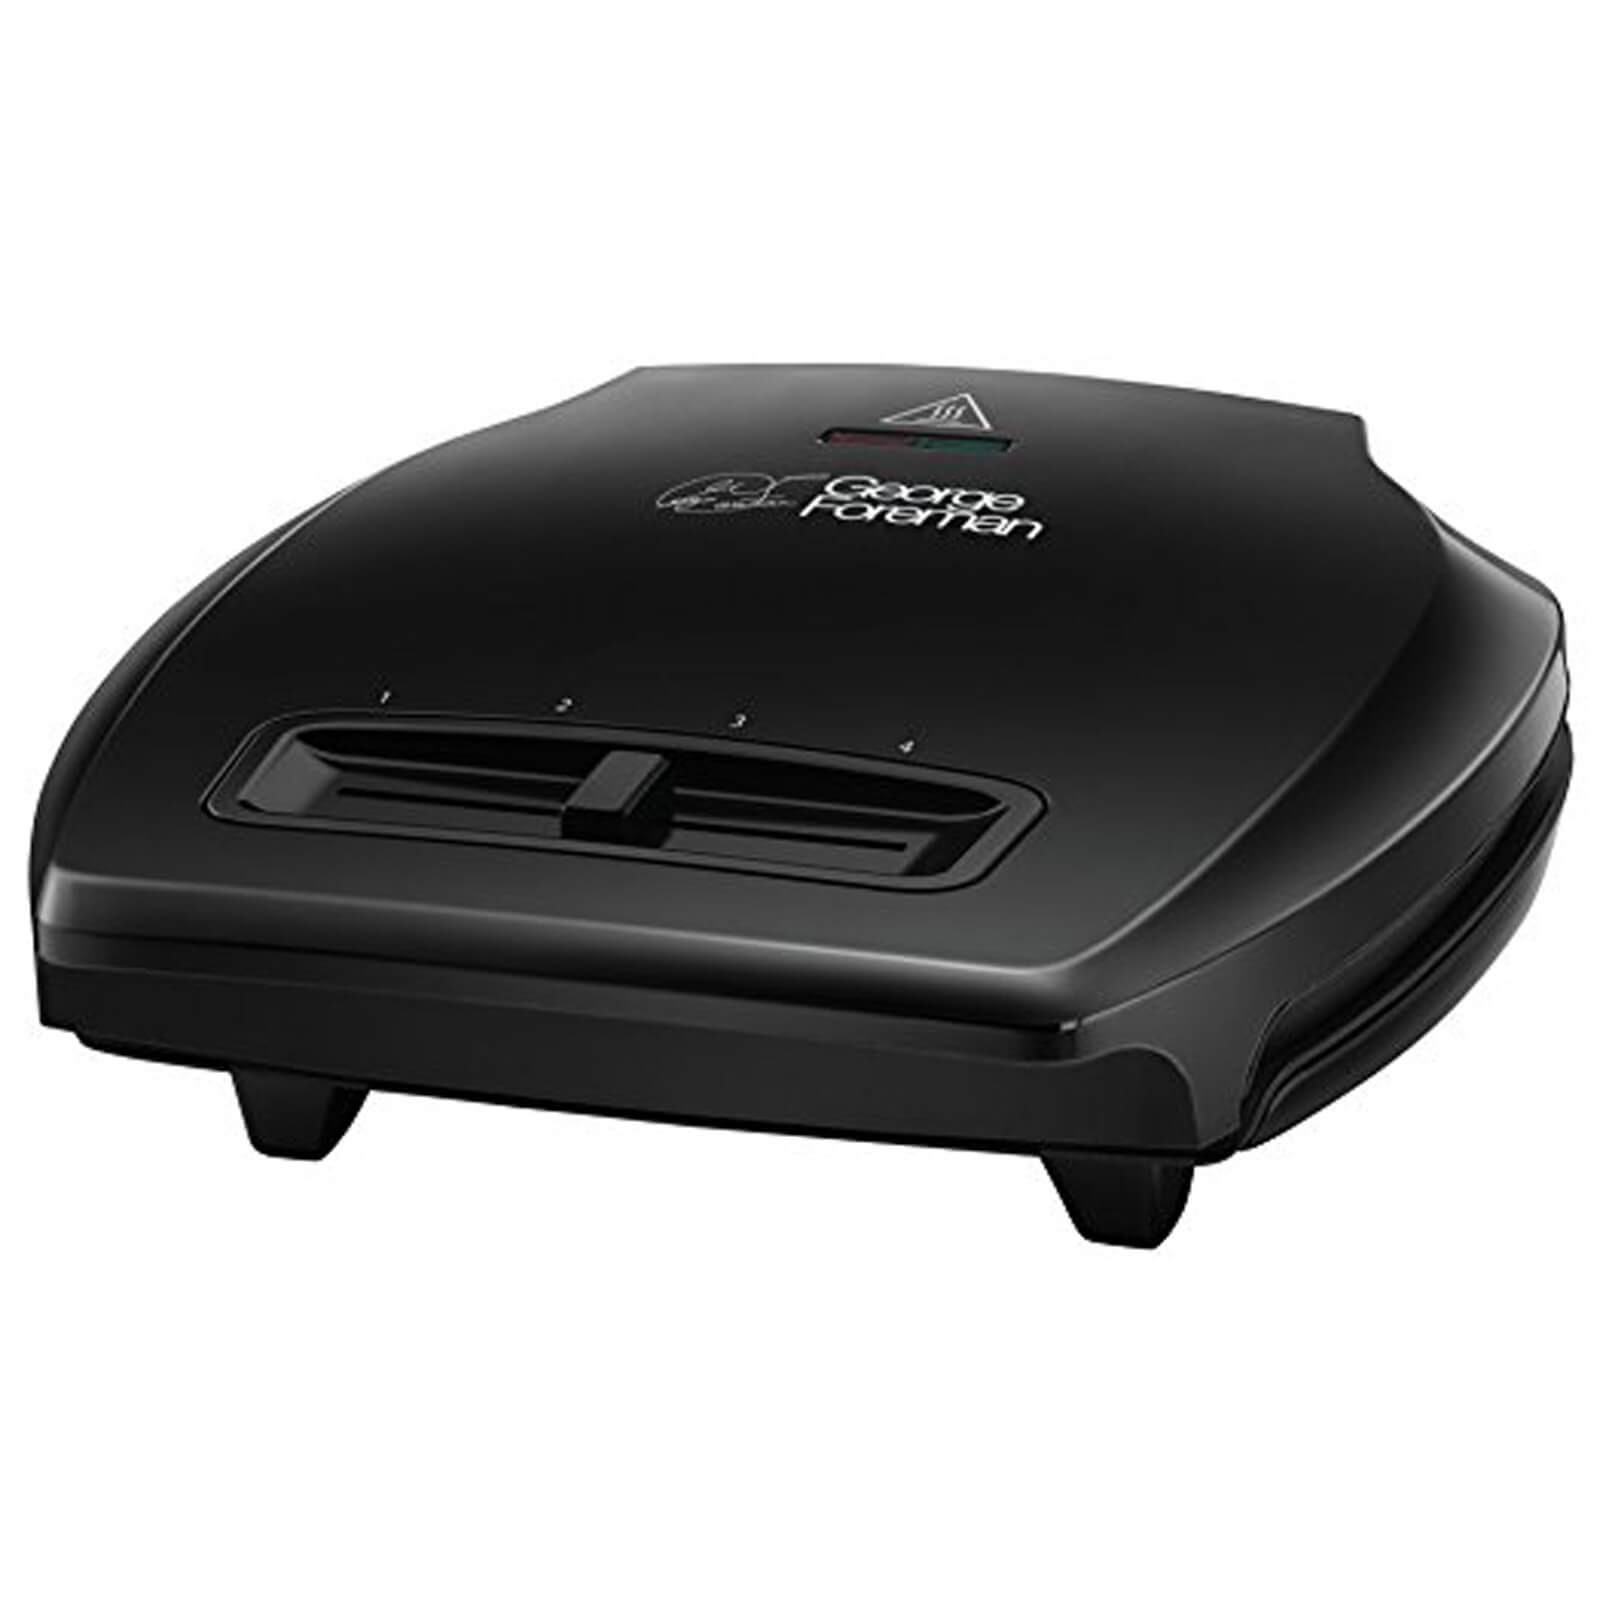 George Foreman 23421 5 Portion Family Grill 1630w